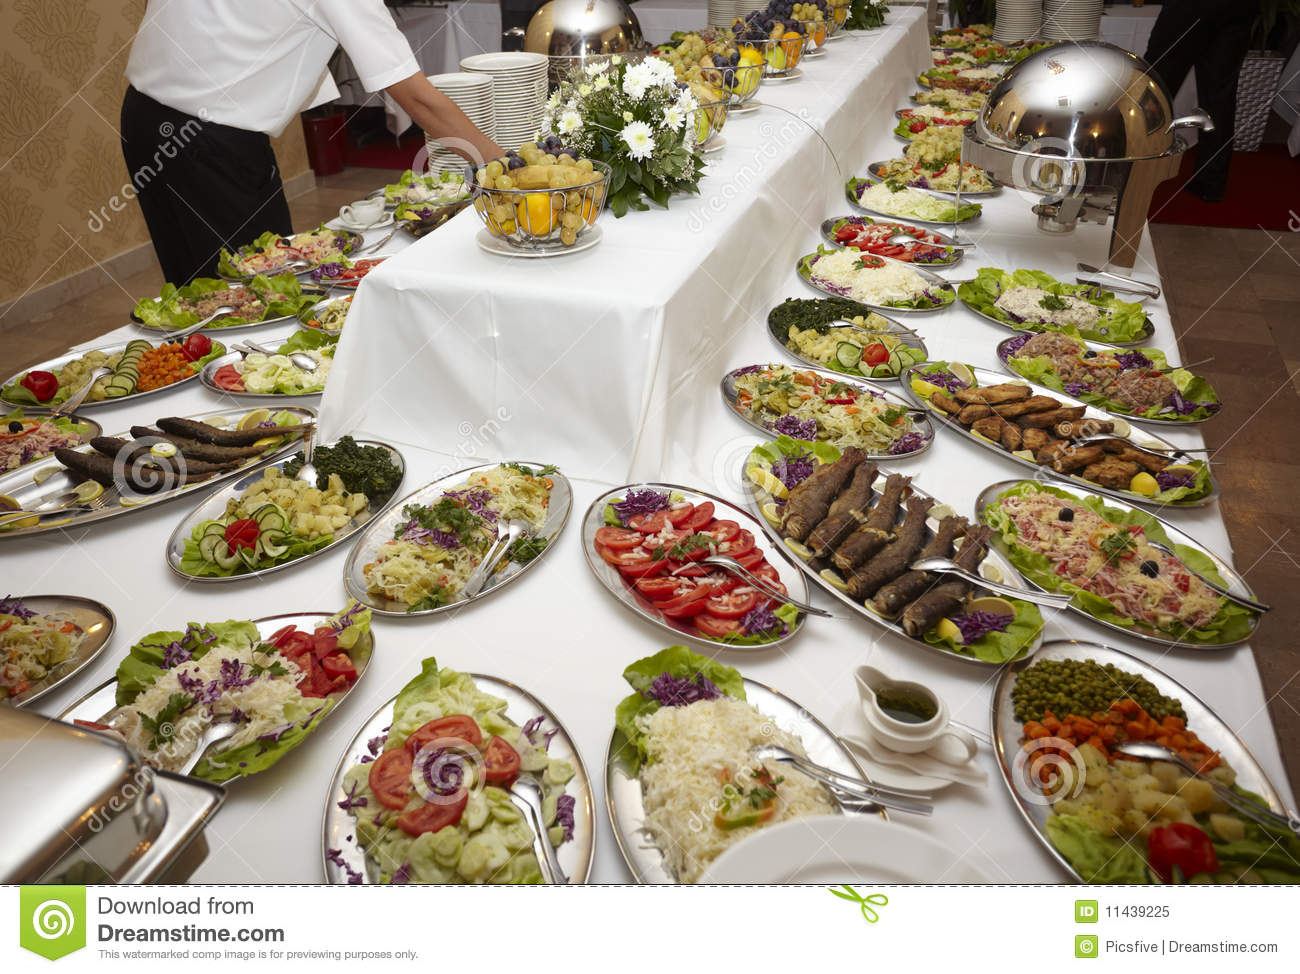 Catering food restaurant cuisine royalty free stock photo for Restaurant cuisine